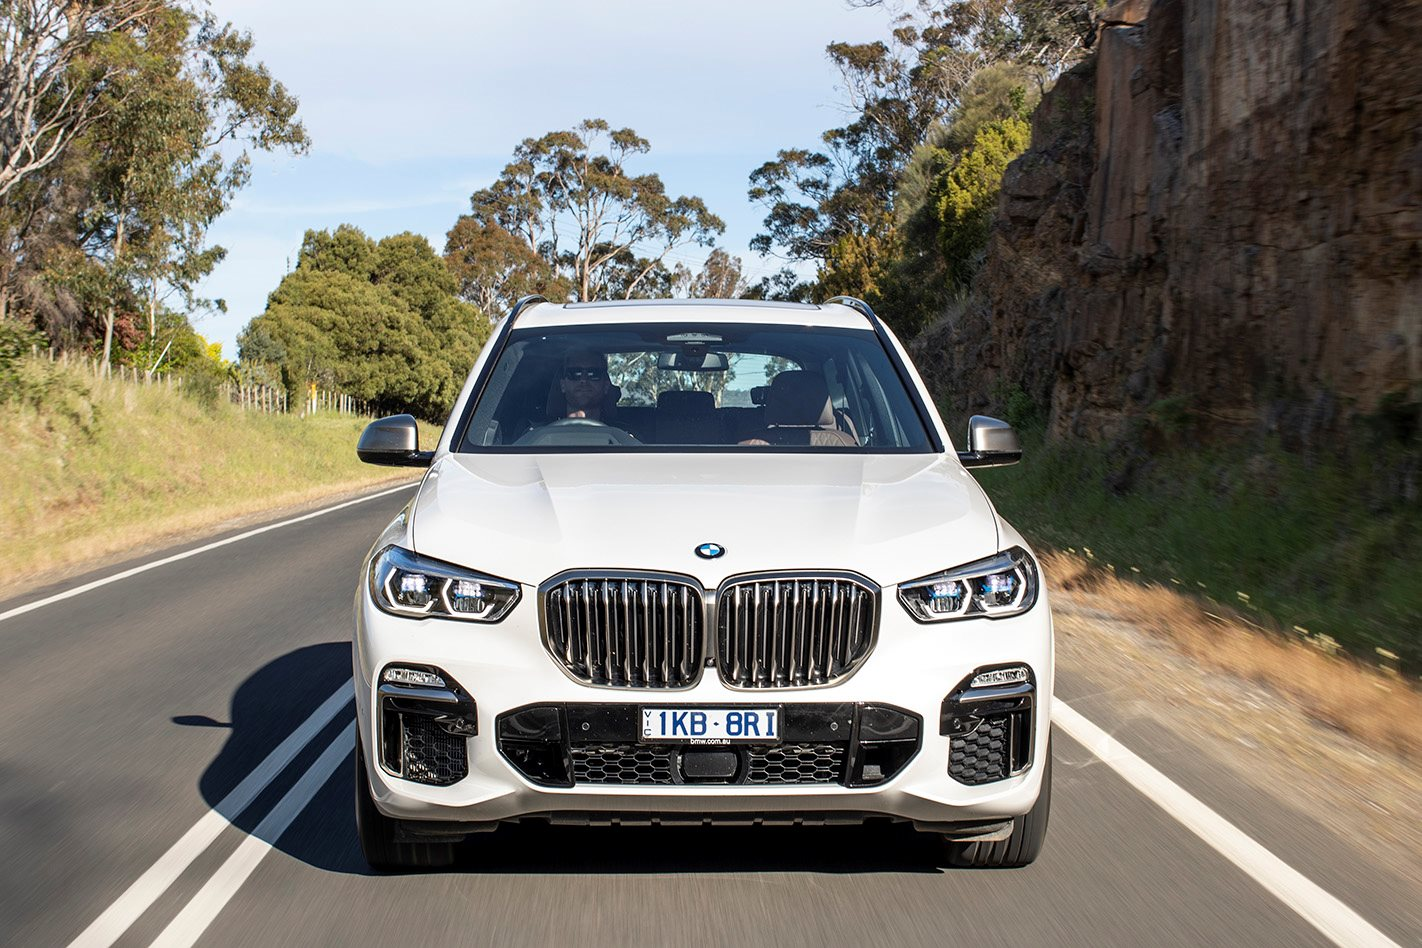 2019 Bmw X5 Review With Video